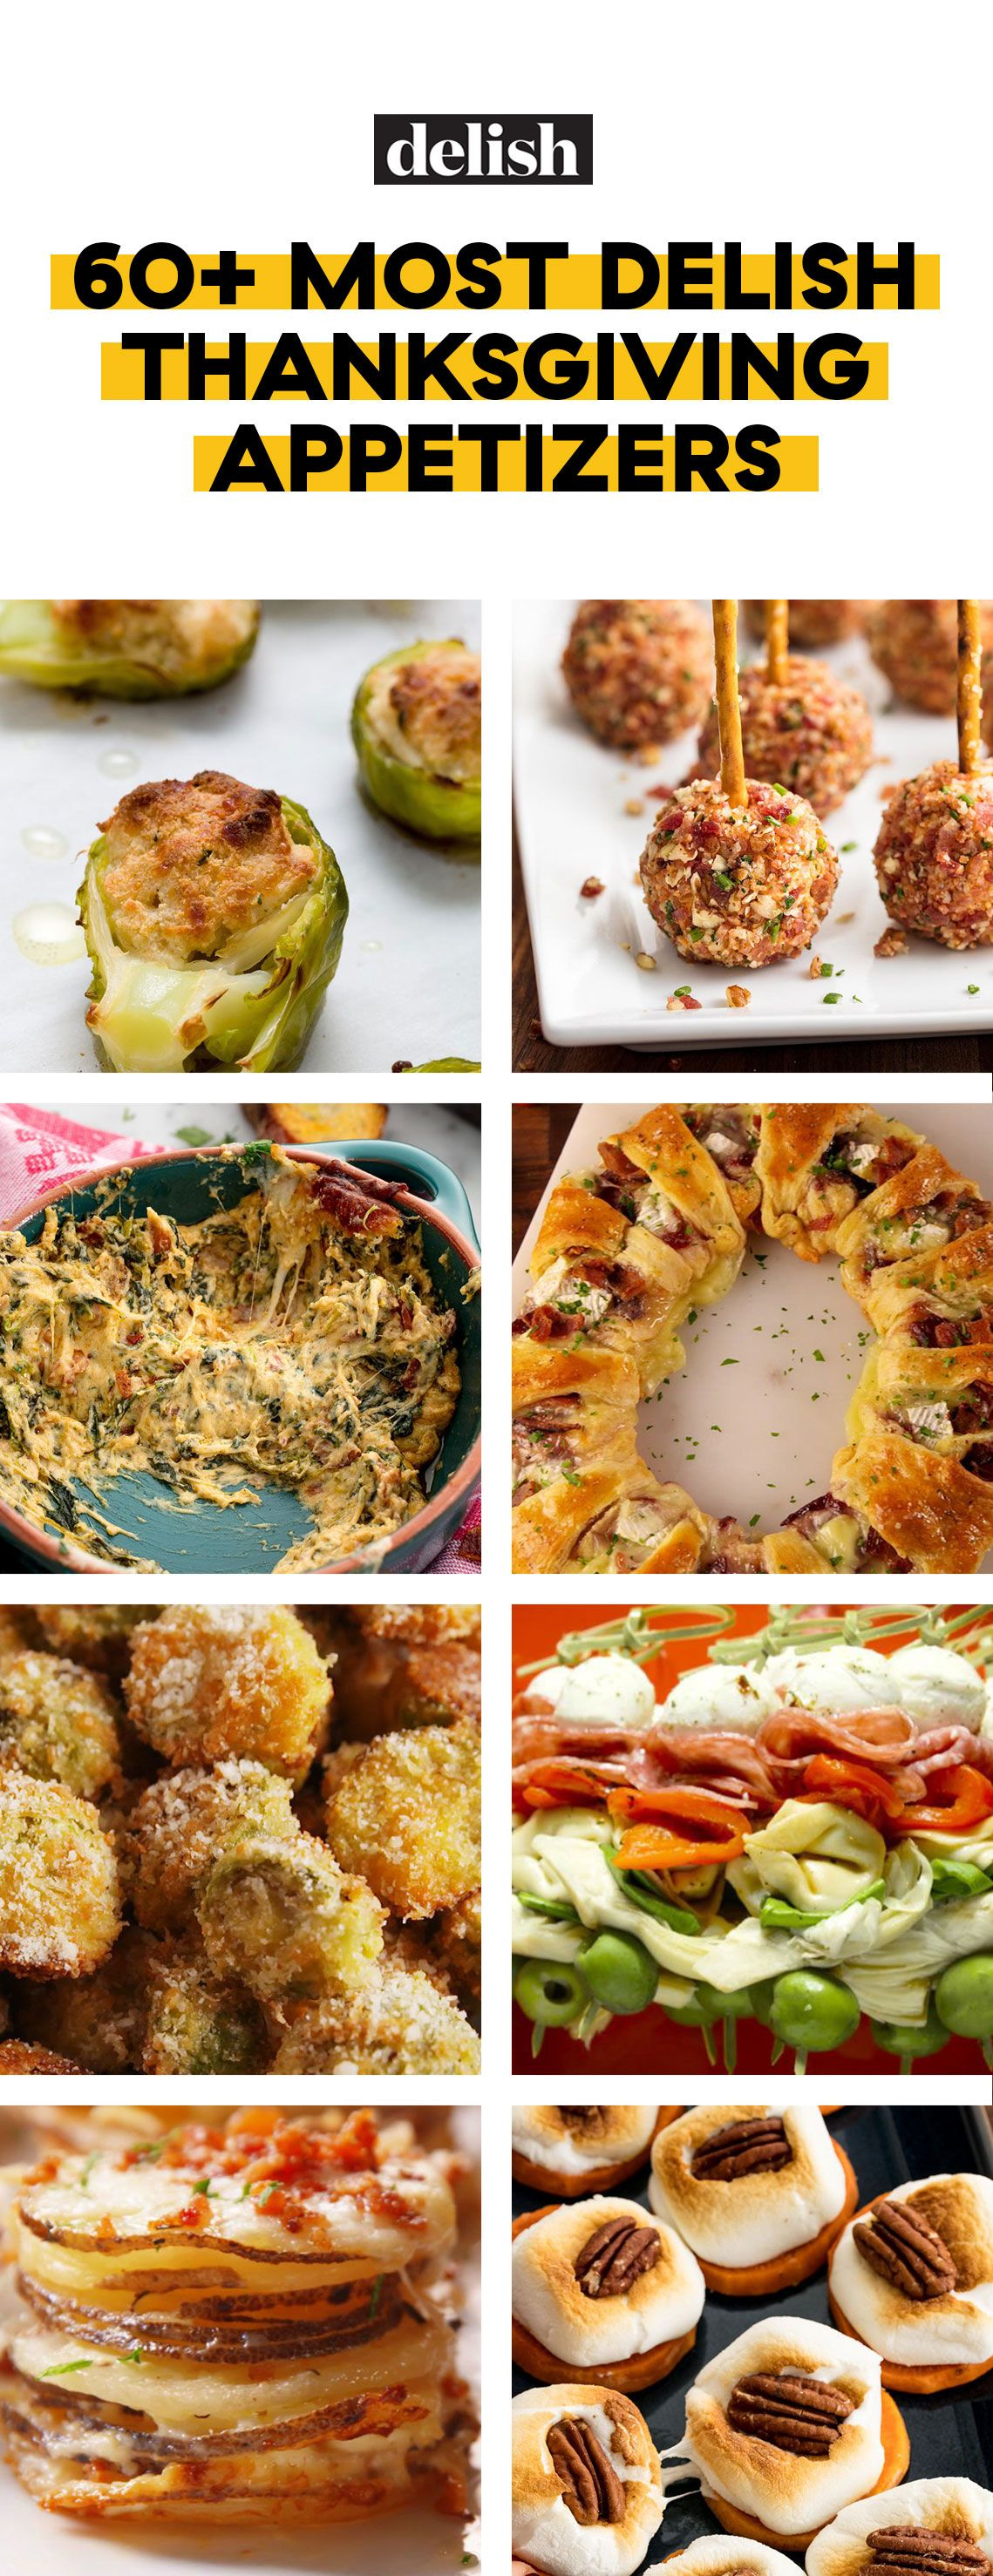 50 Best Thanksgiving Appetizers Ideas For Easy Thanksgiving Apps Recipes